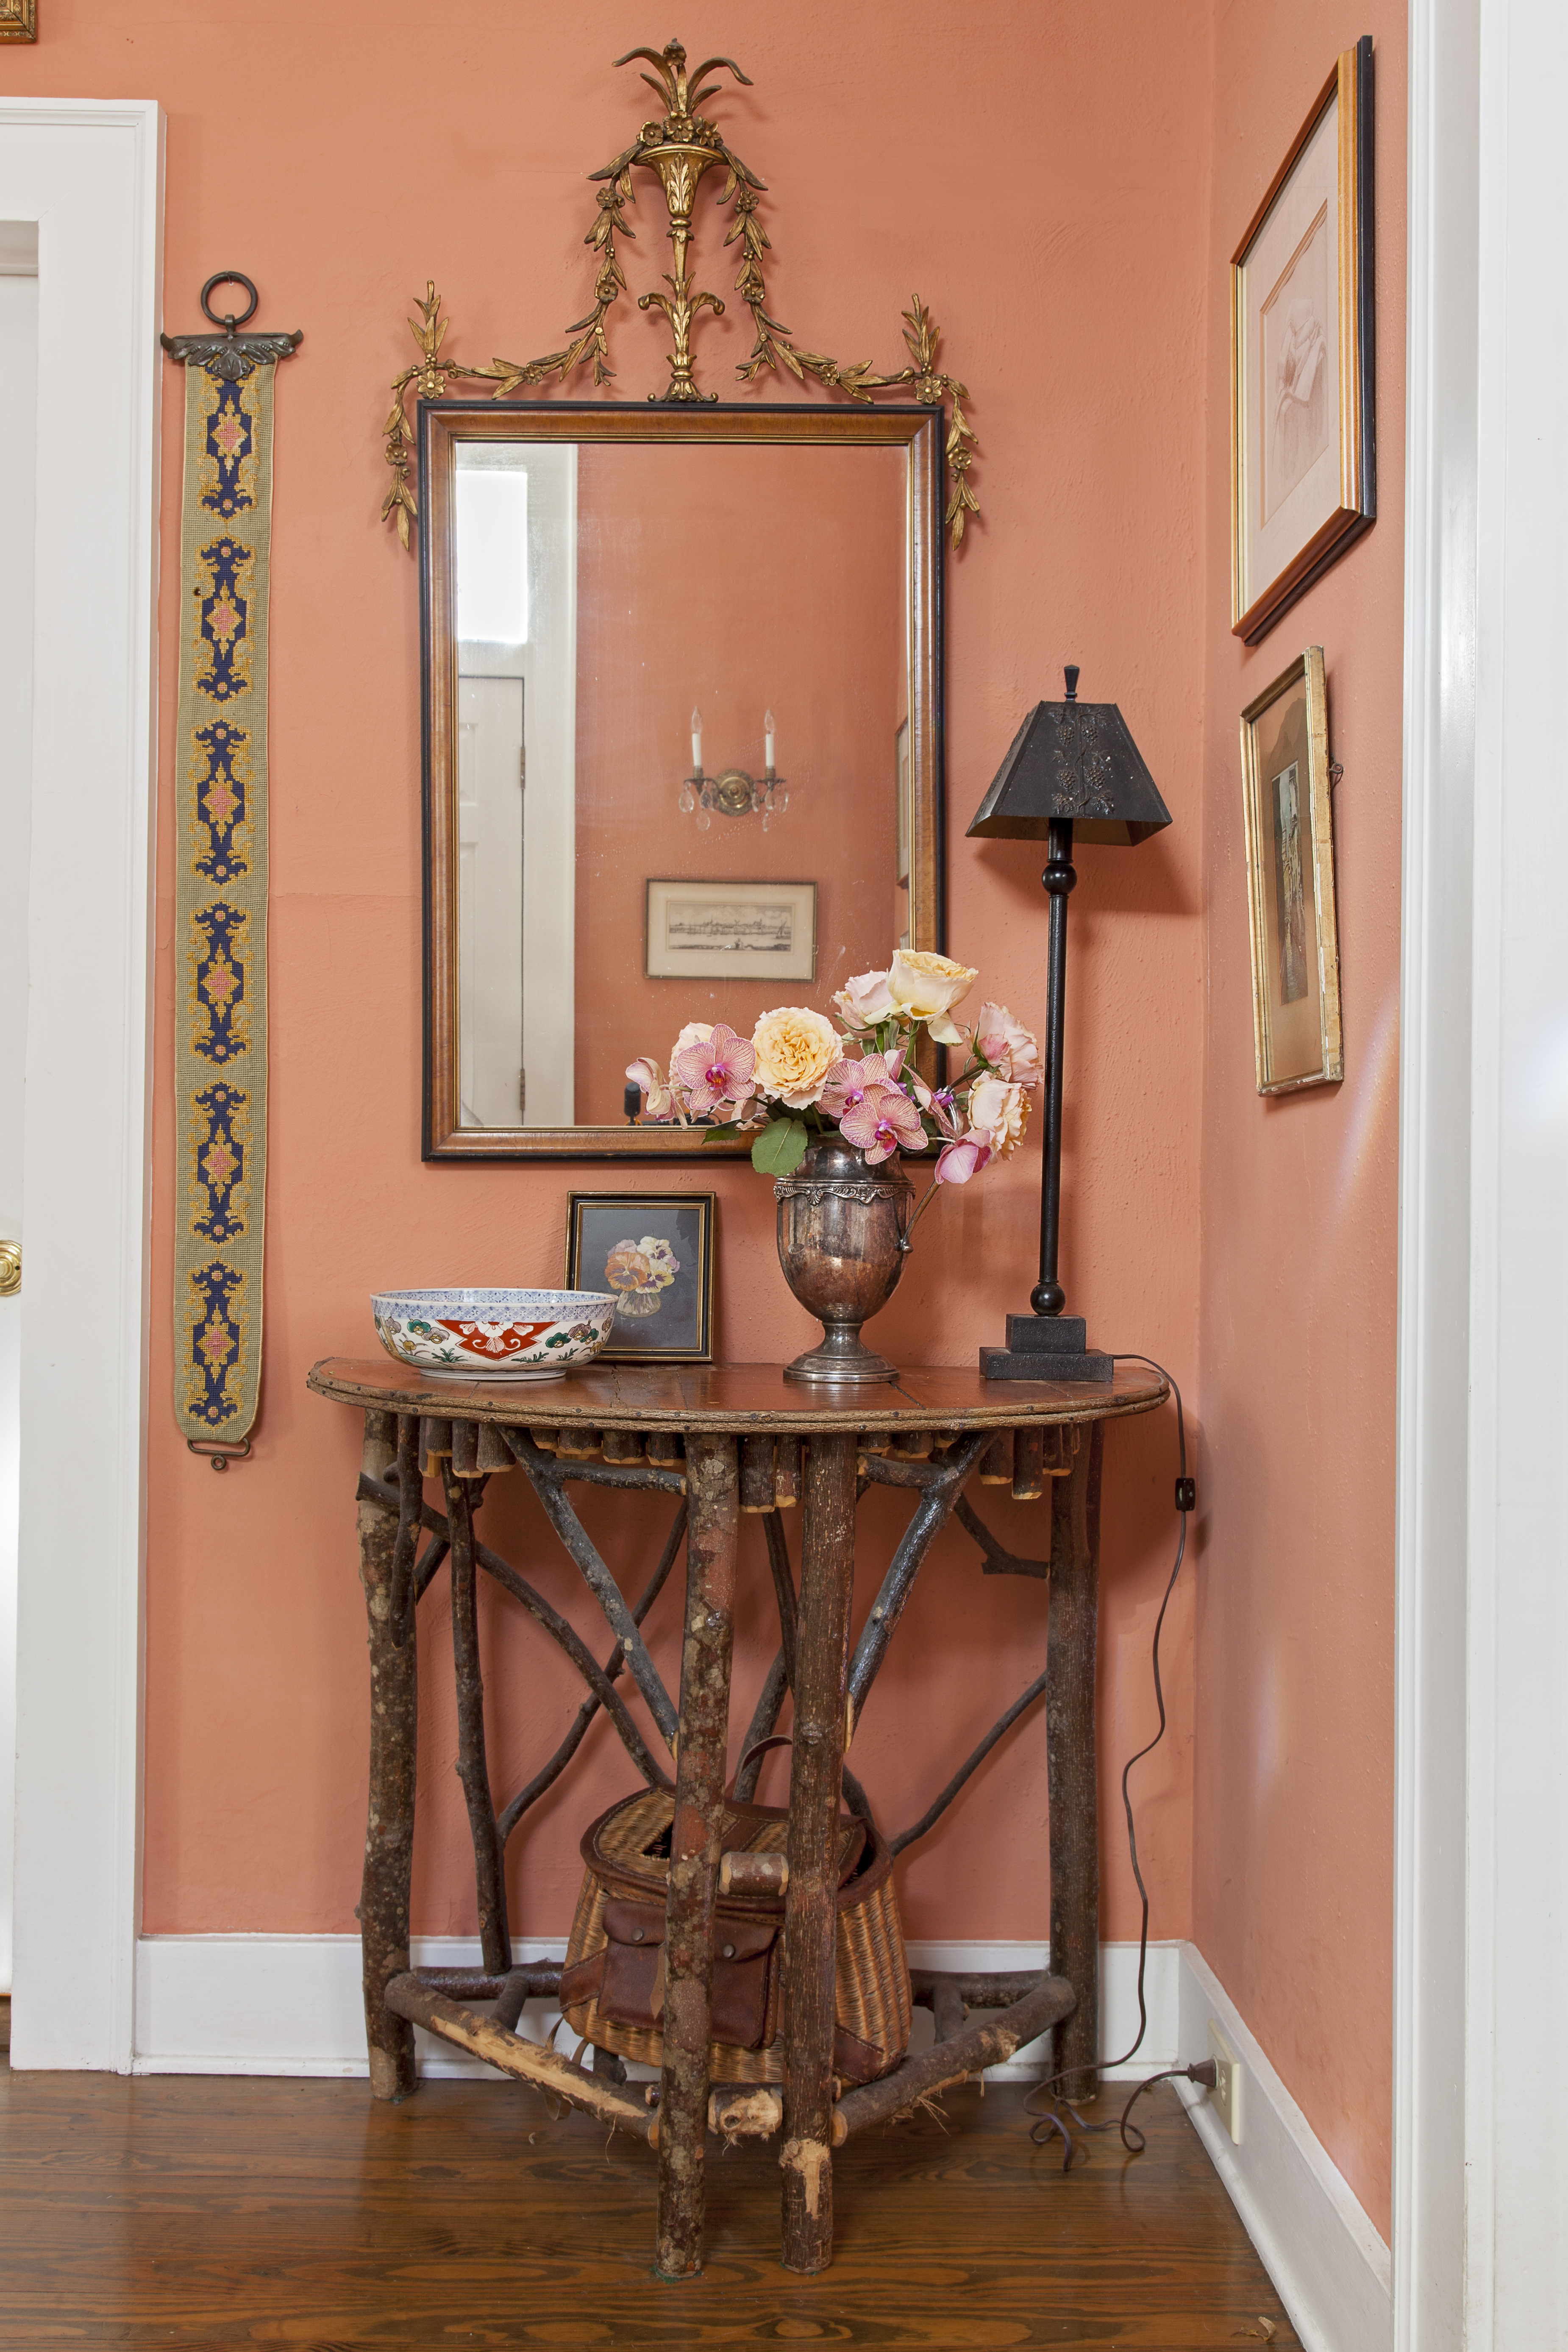 A welcoming vignette in the entry way